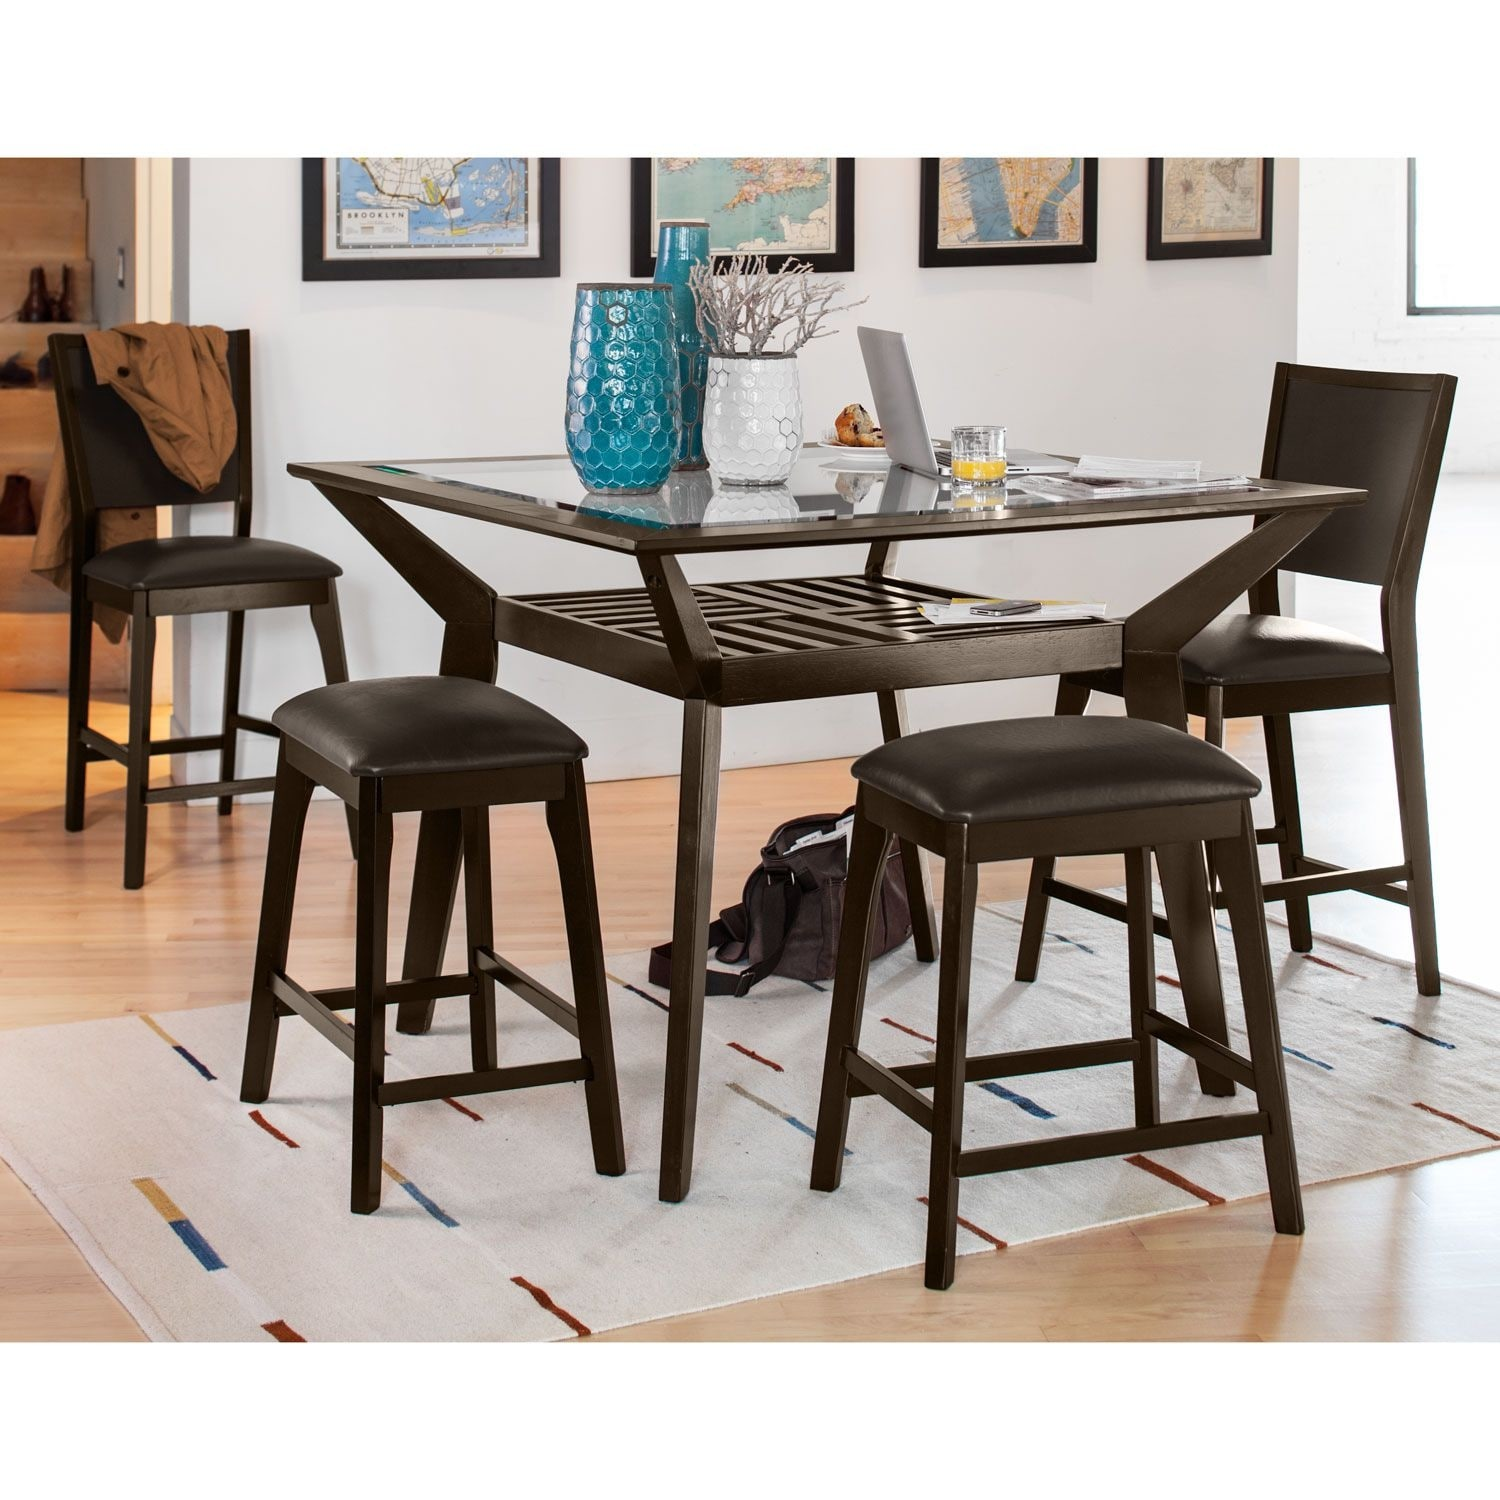 Mystic Counter Height Table 2 Chairs and 2 Backless Stools